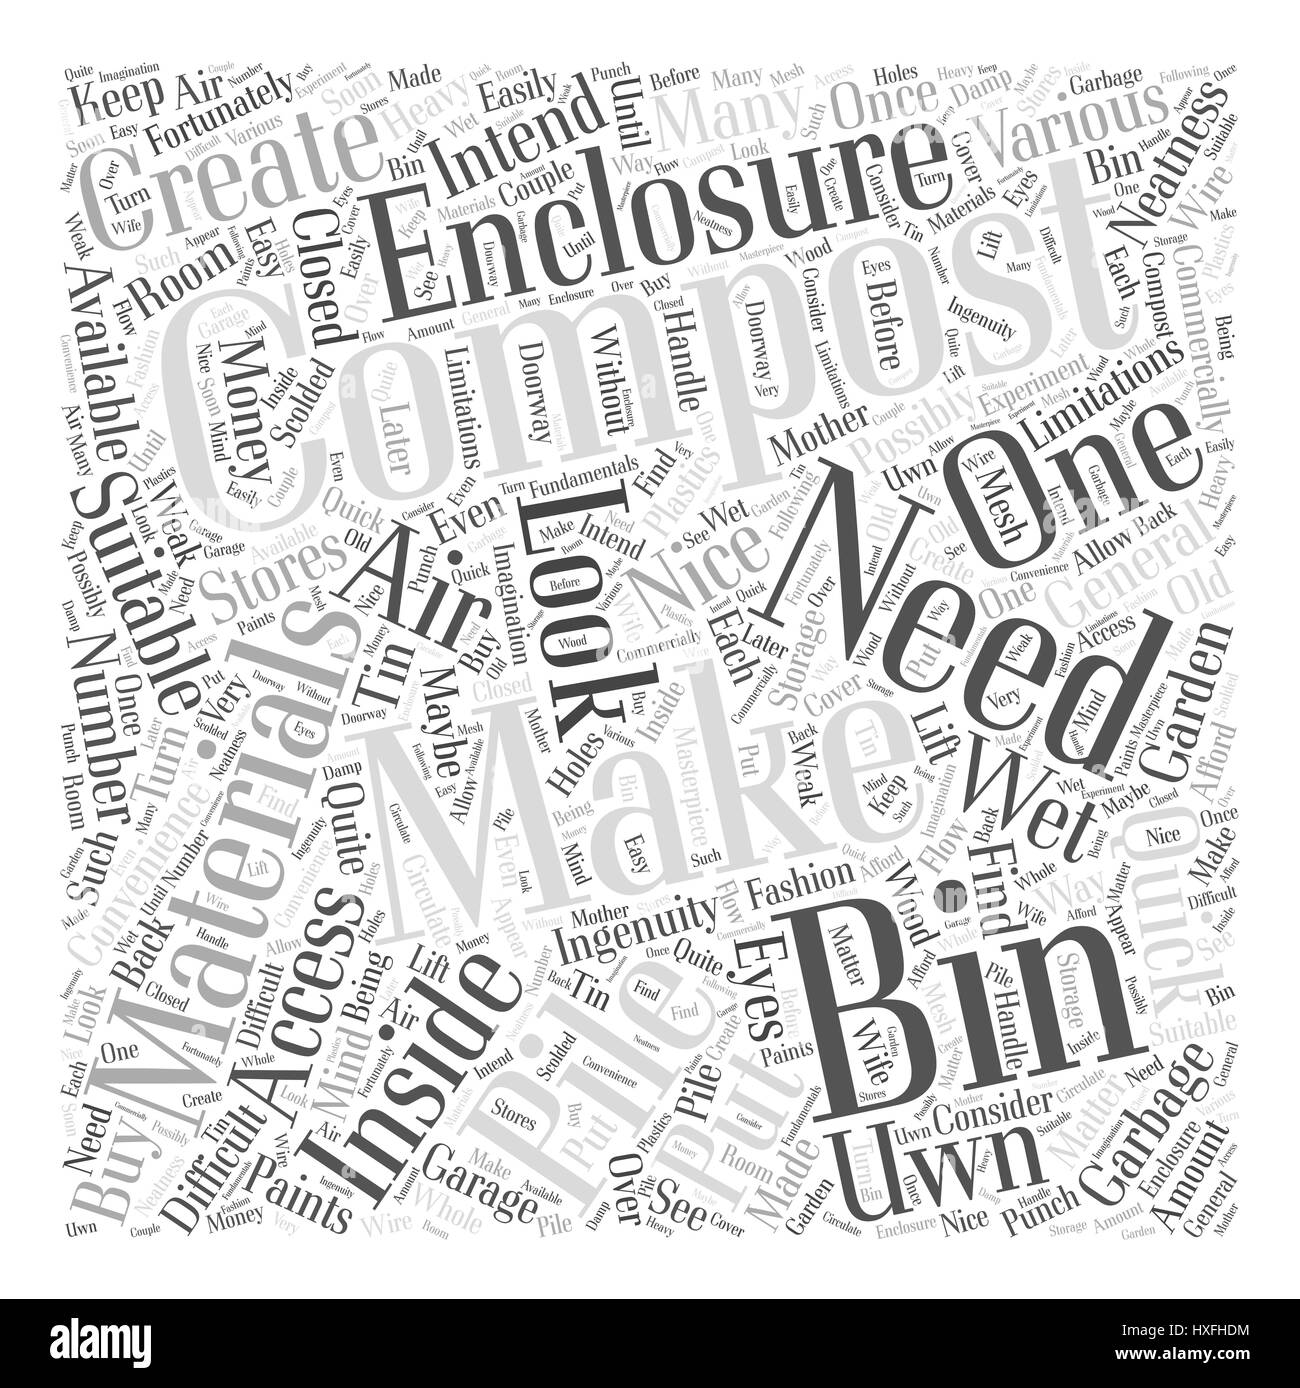 Making Your Uwn Compost Bin Word Cloud Concept - Stock Image